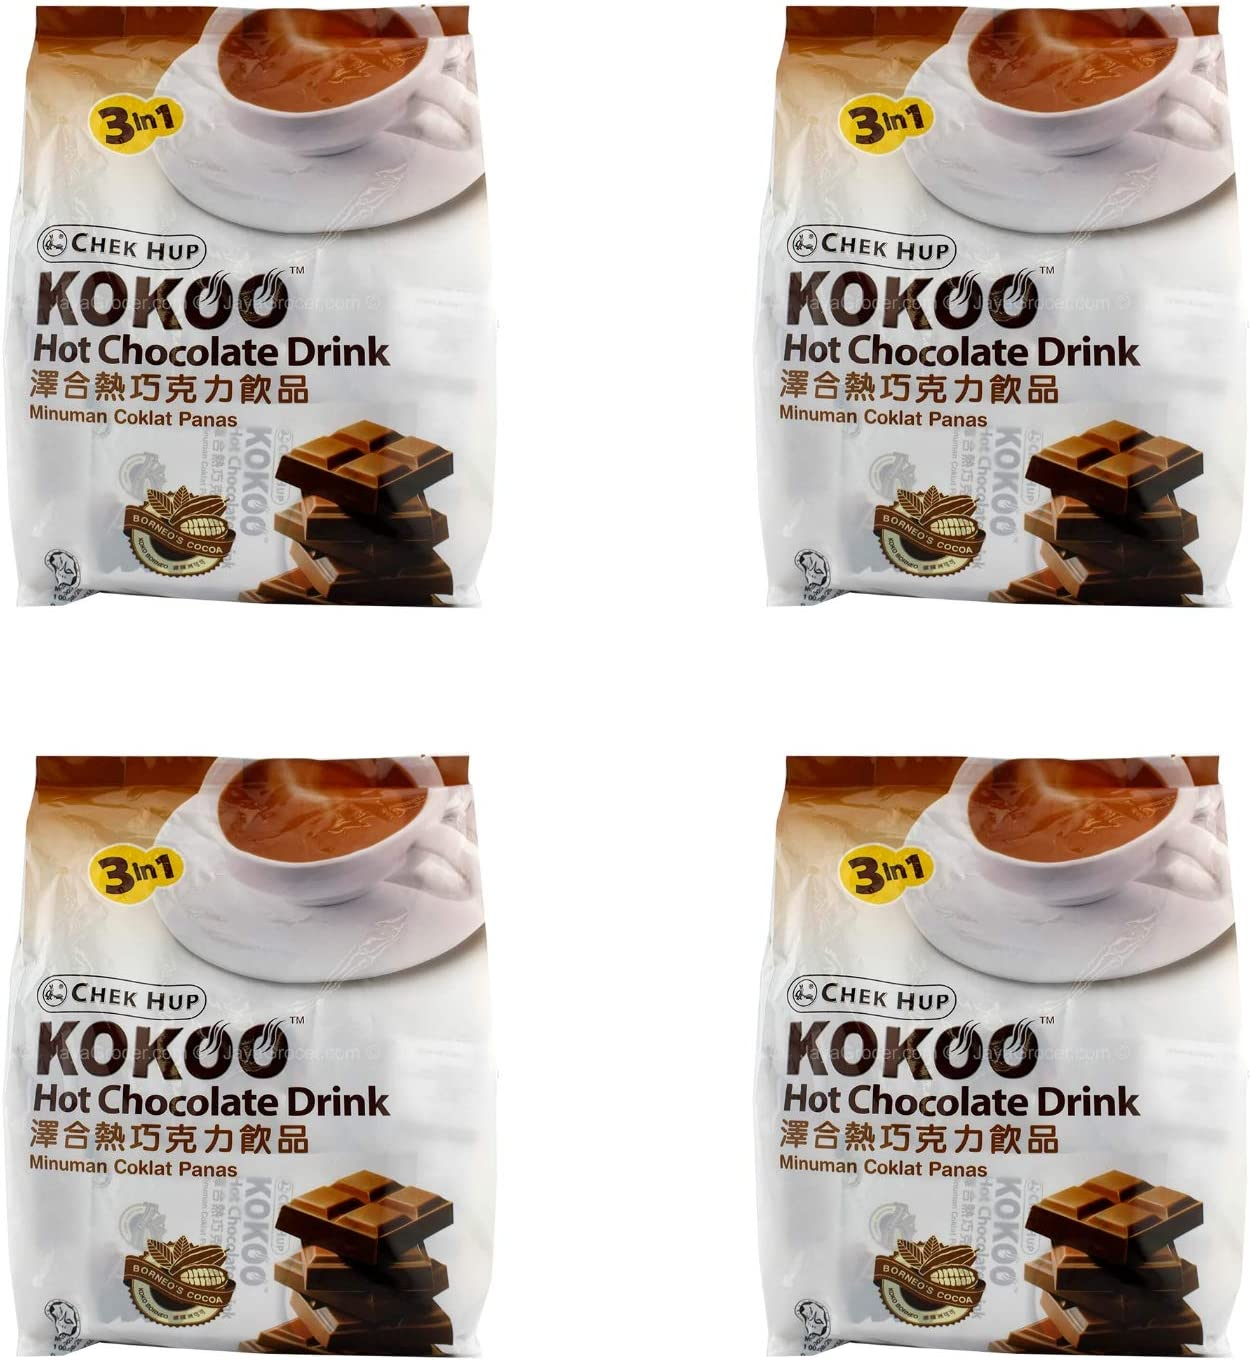 4 Pack Chek Hup 3 in 1 KoKoo Hot Chocolate Drink Imported from Malaysia (4x12 sachets)